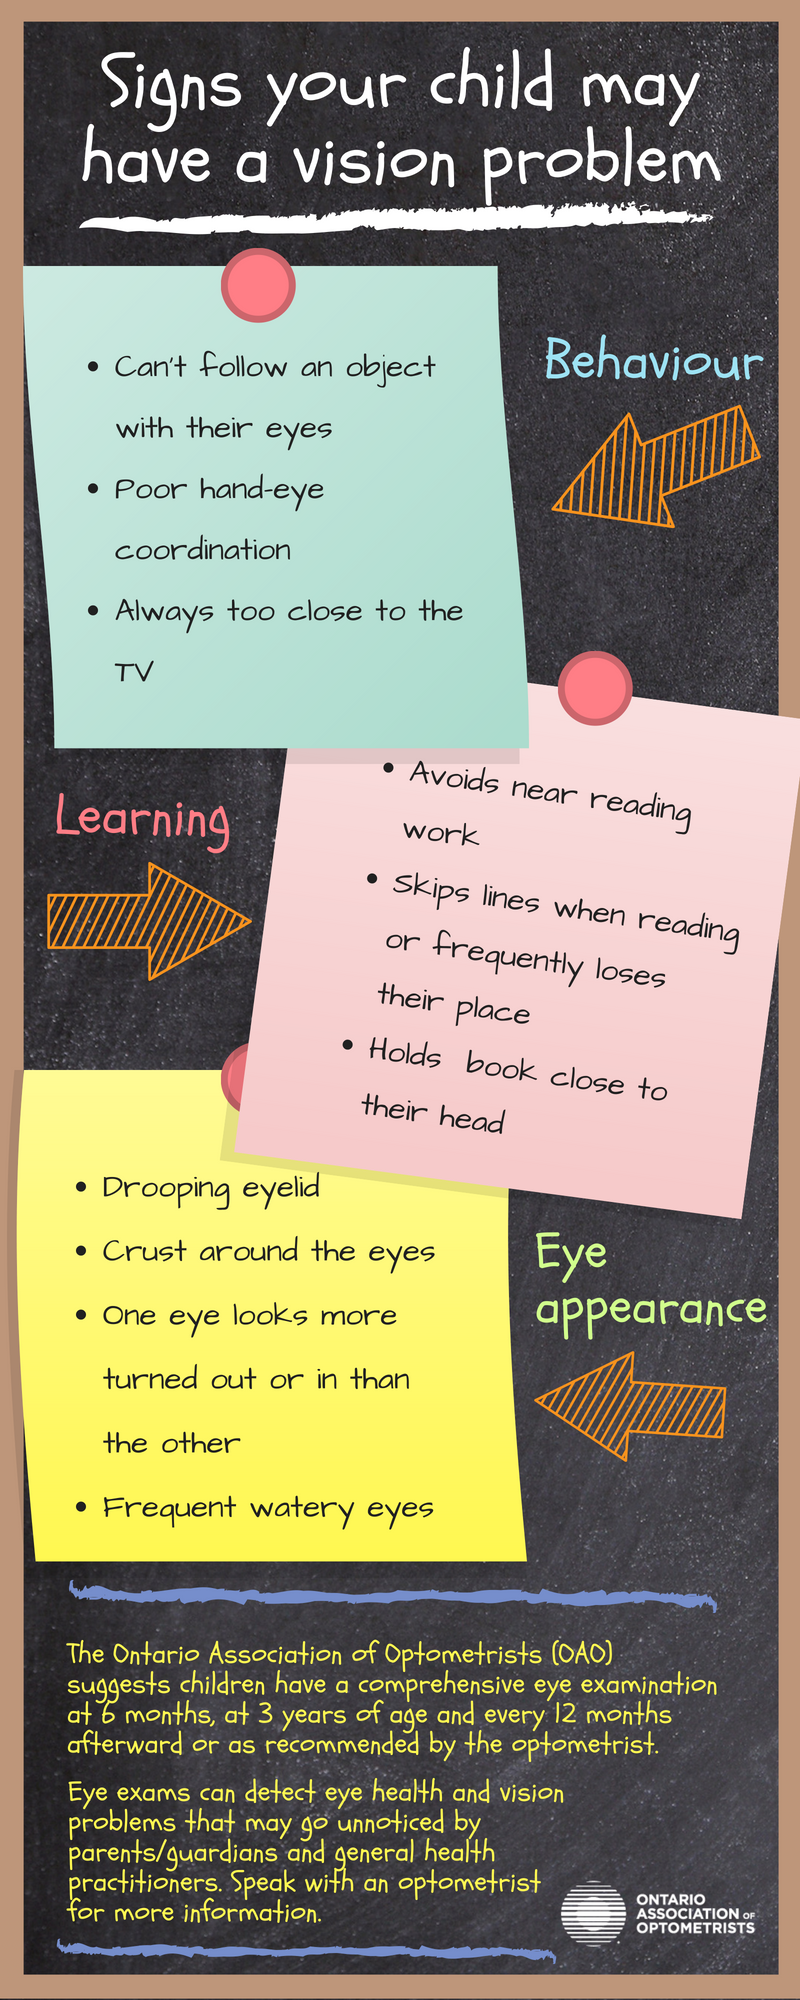 Infographic for child's vision problems